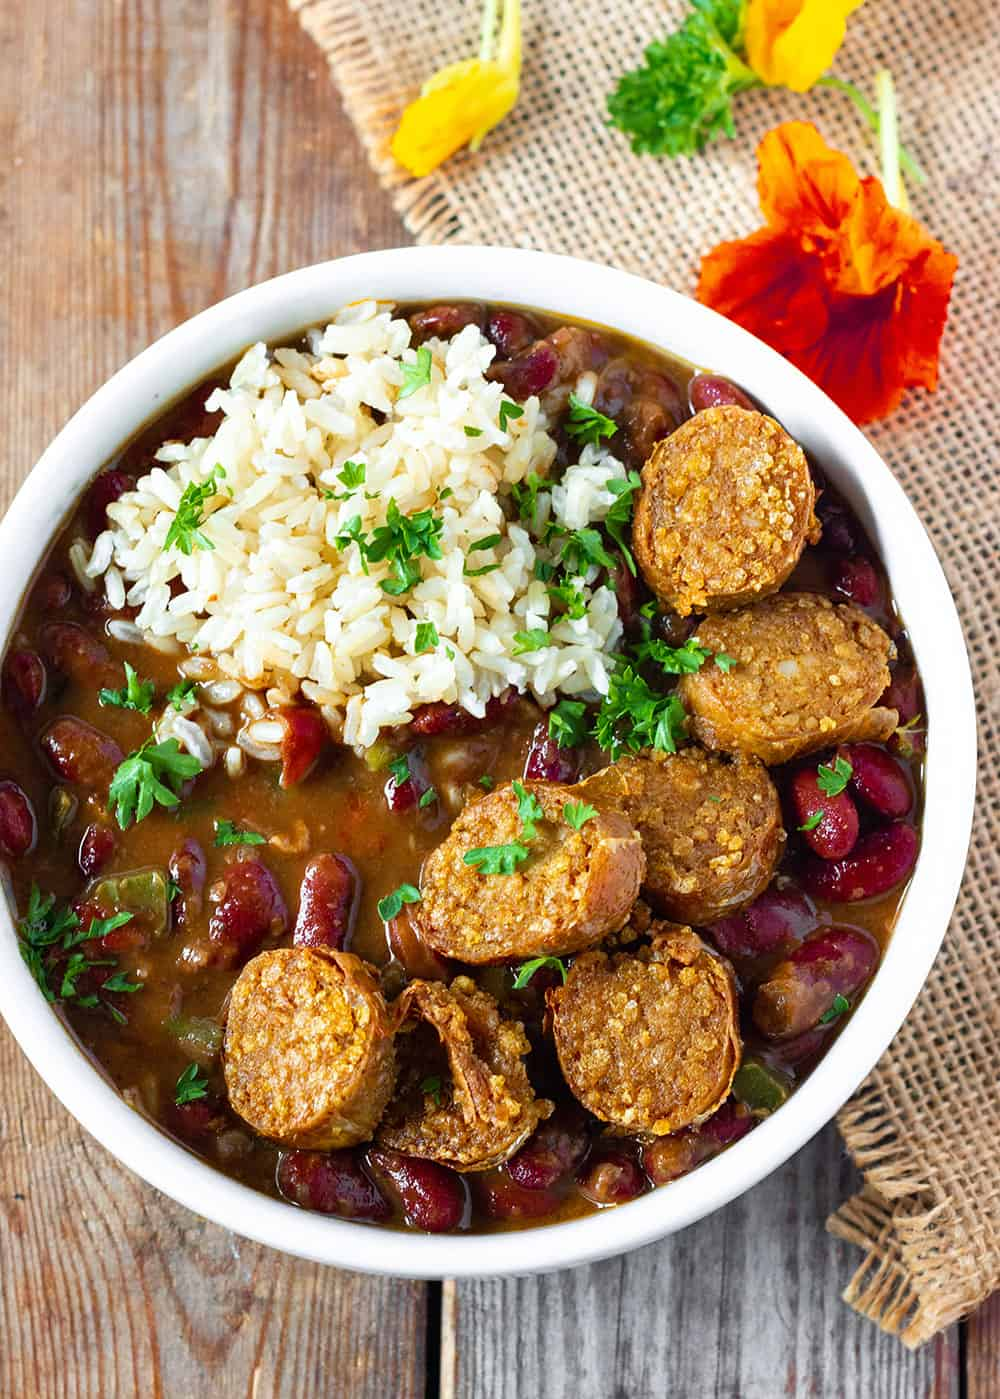 rice smothered with red beans with slices of vegan sausage in a white bowl